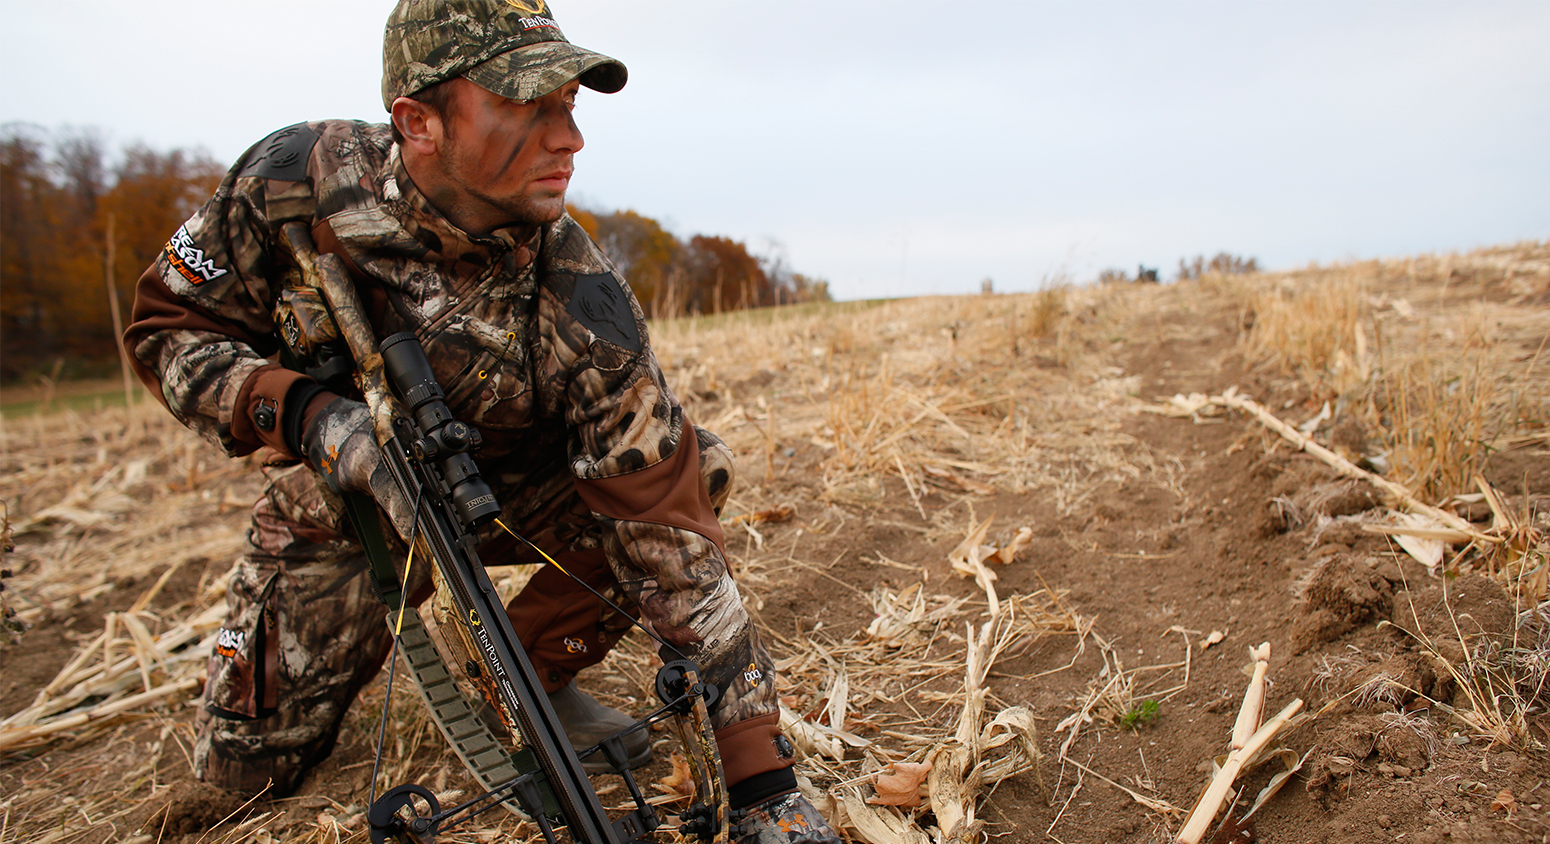 Are You a Die-Hard Hunter?